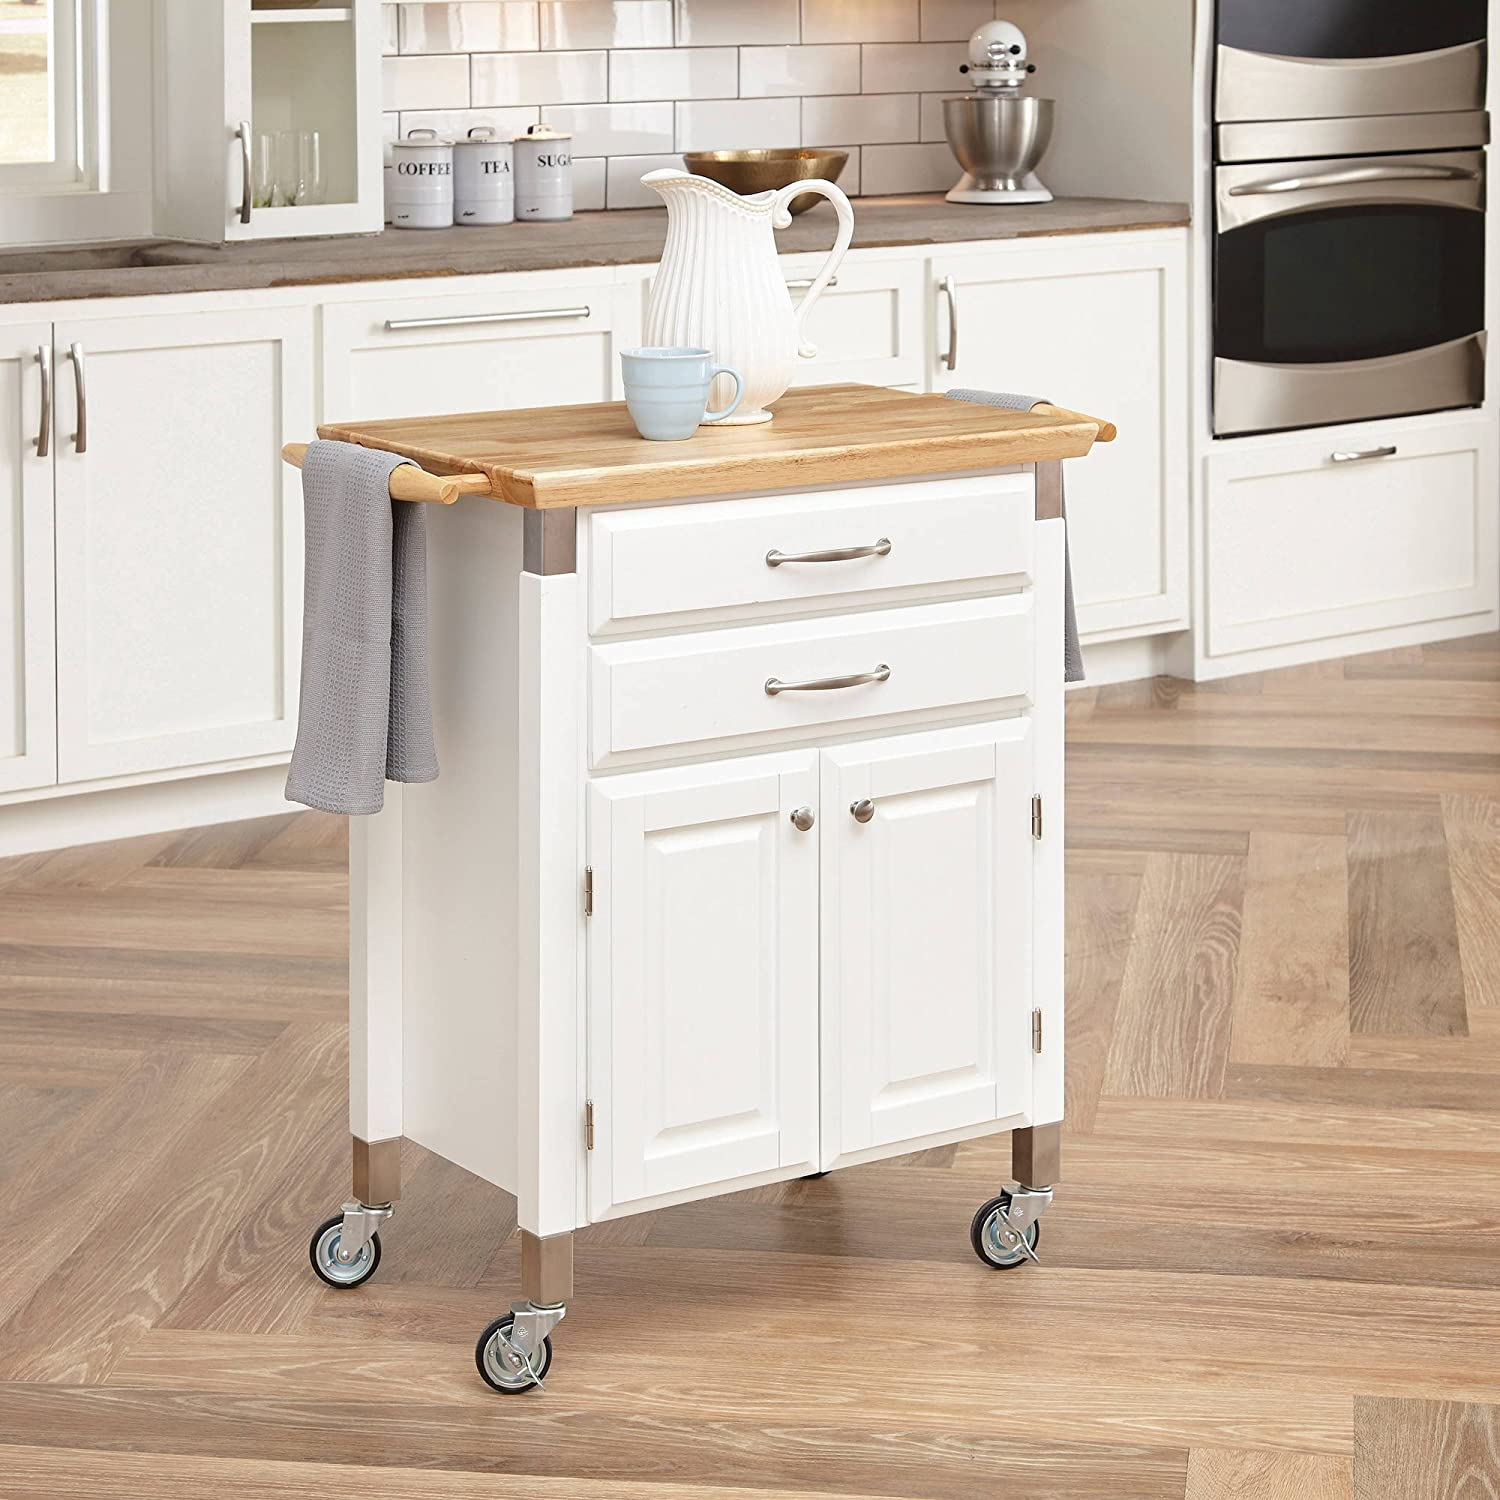 Dolly Madison Prep and Serve Kitchen Cart - White